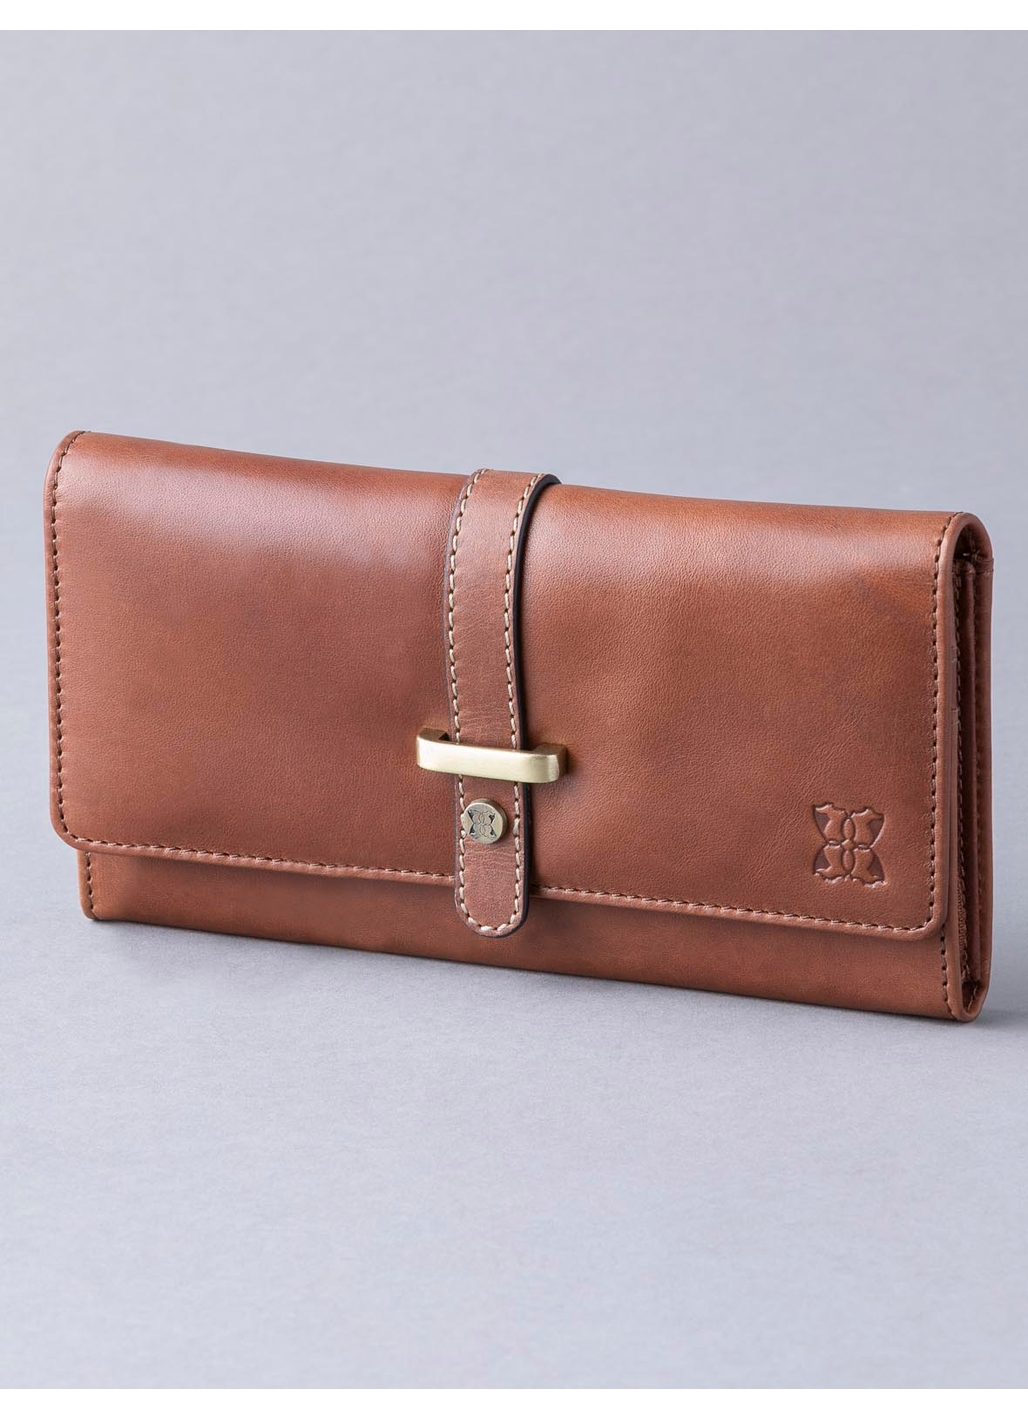 Butterwick Leather Flapover Purse in Chestnut